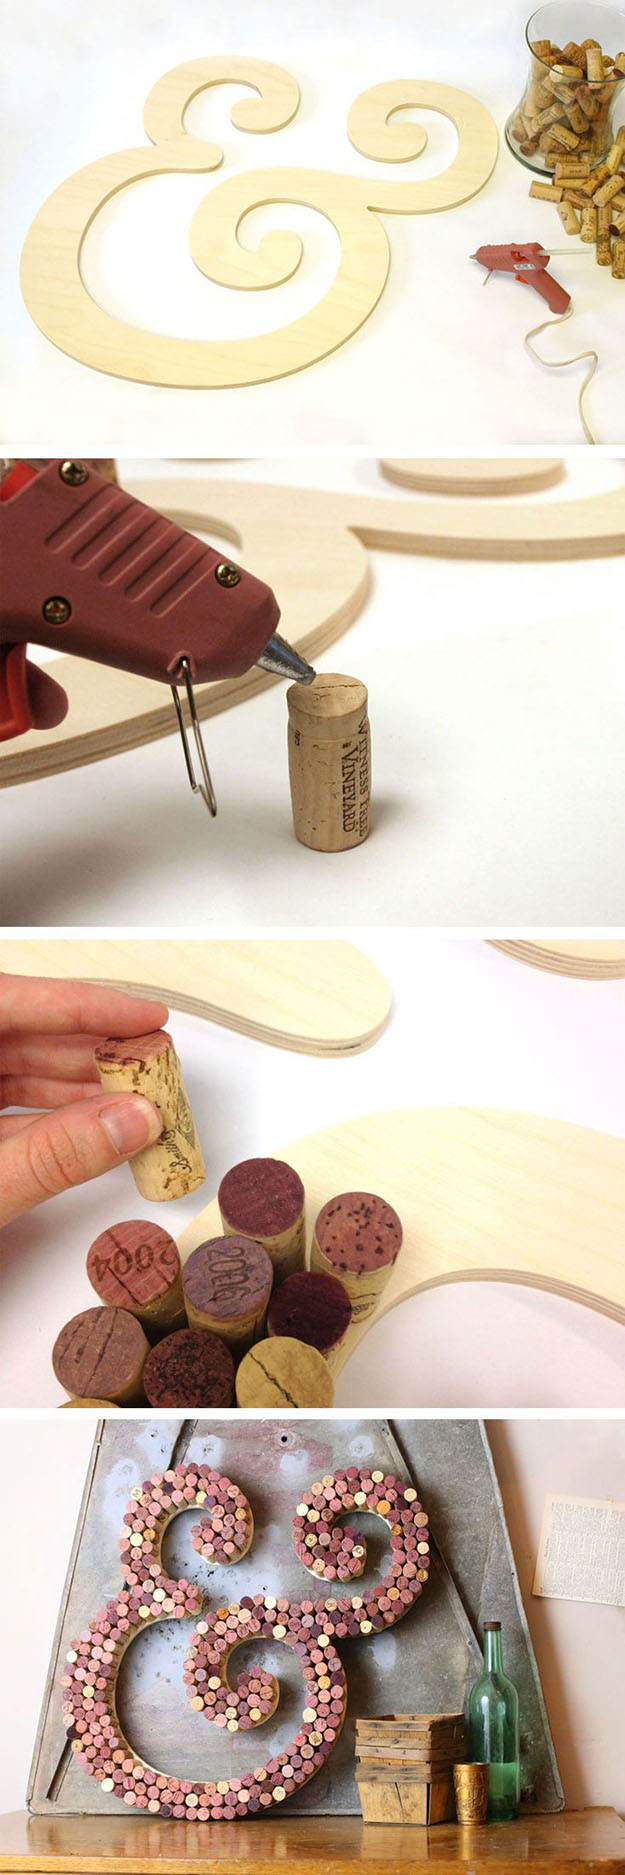 Easy Wine Cork DIY Wall Decor Projects - Wine Cork Letters - DIY Projects & Crafts by DIY JOY at http://diyjoy.com/diy-wine-cork-crafts-craft-ideas